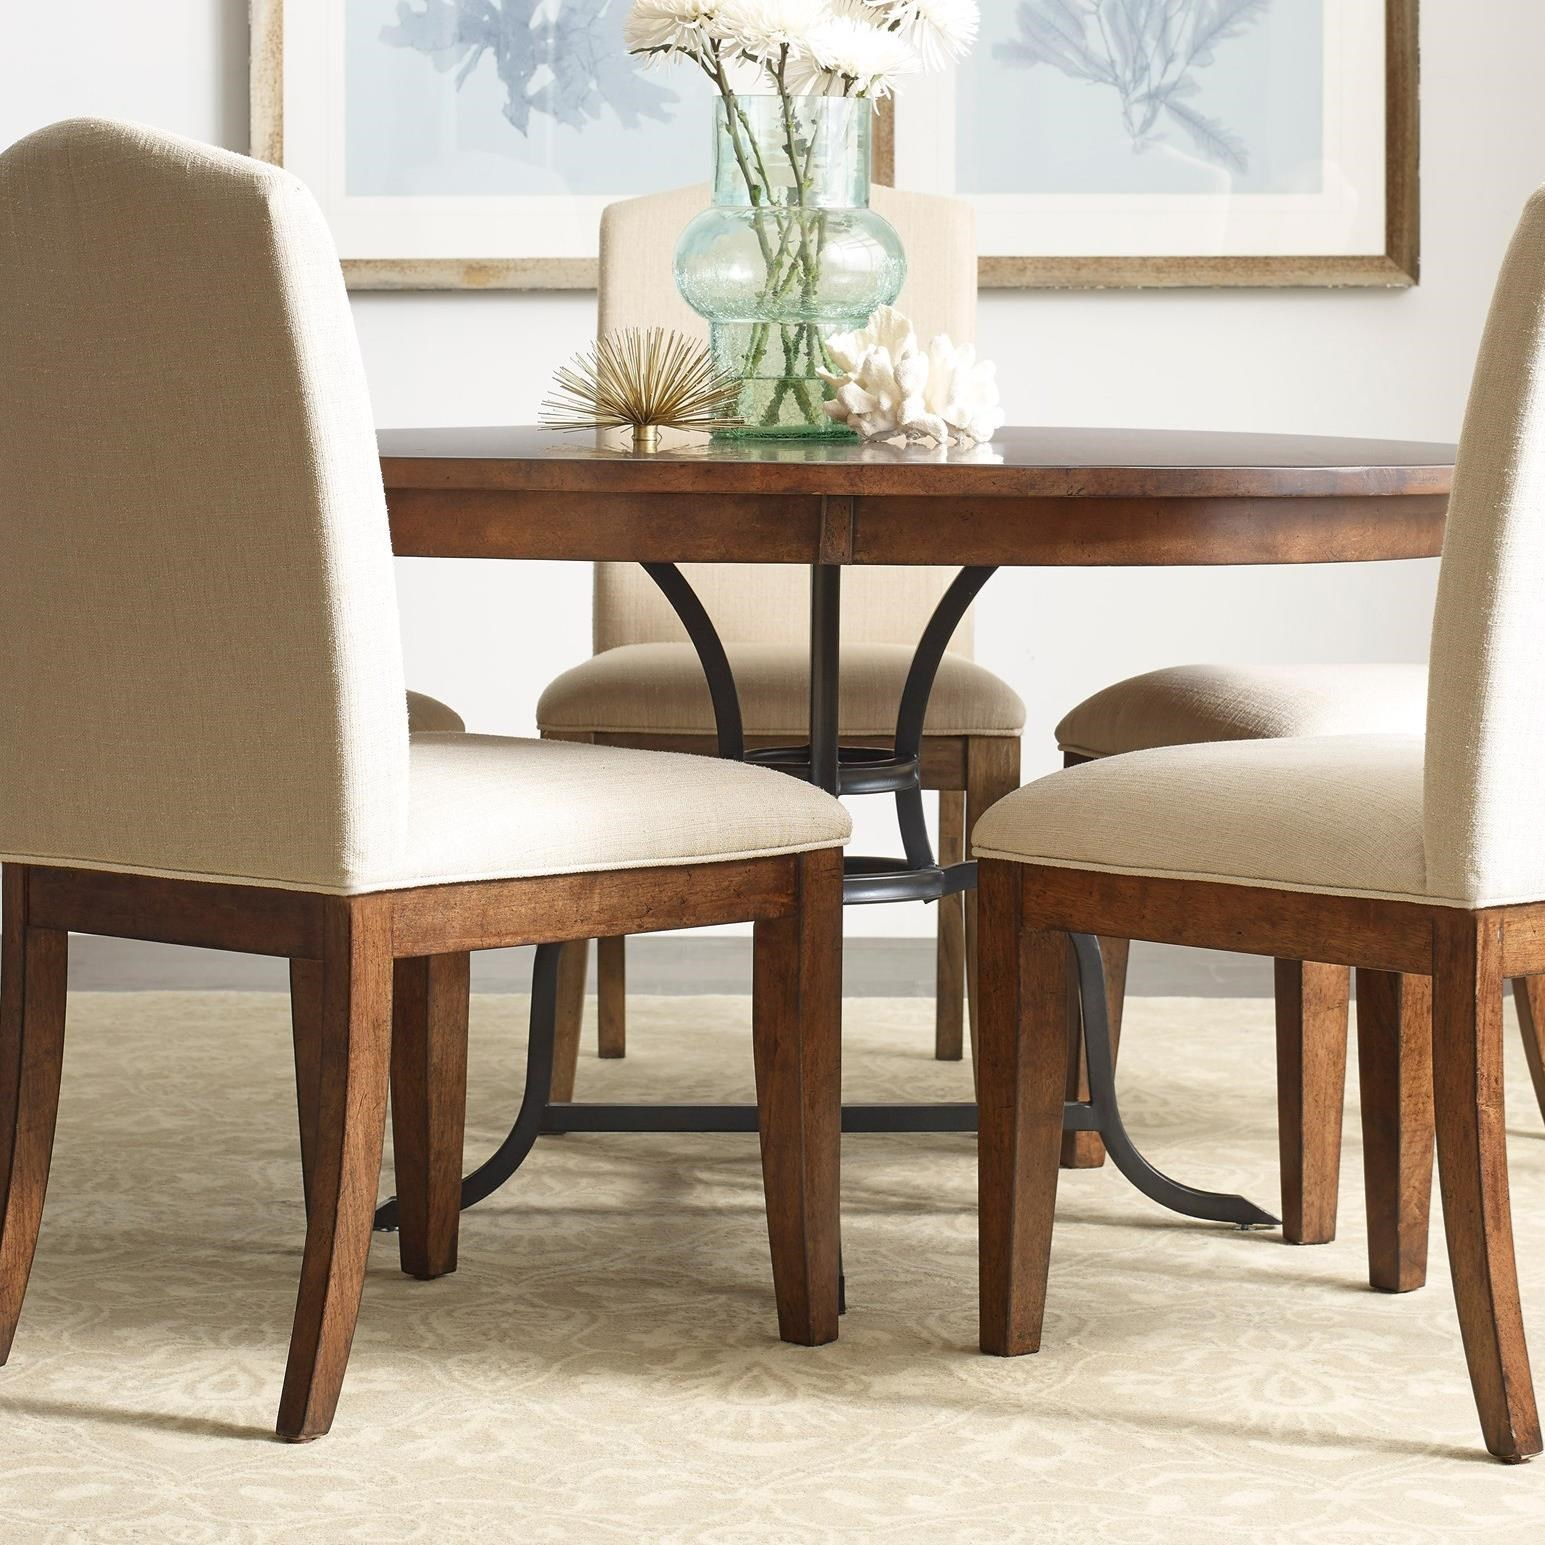 54 round dining table w metal base the nook